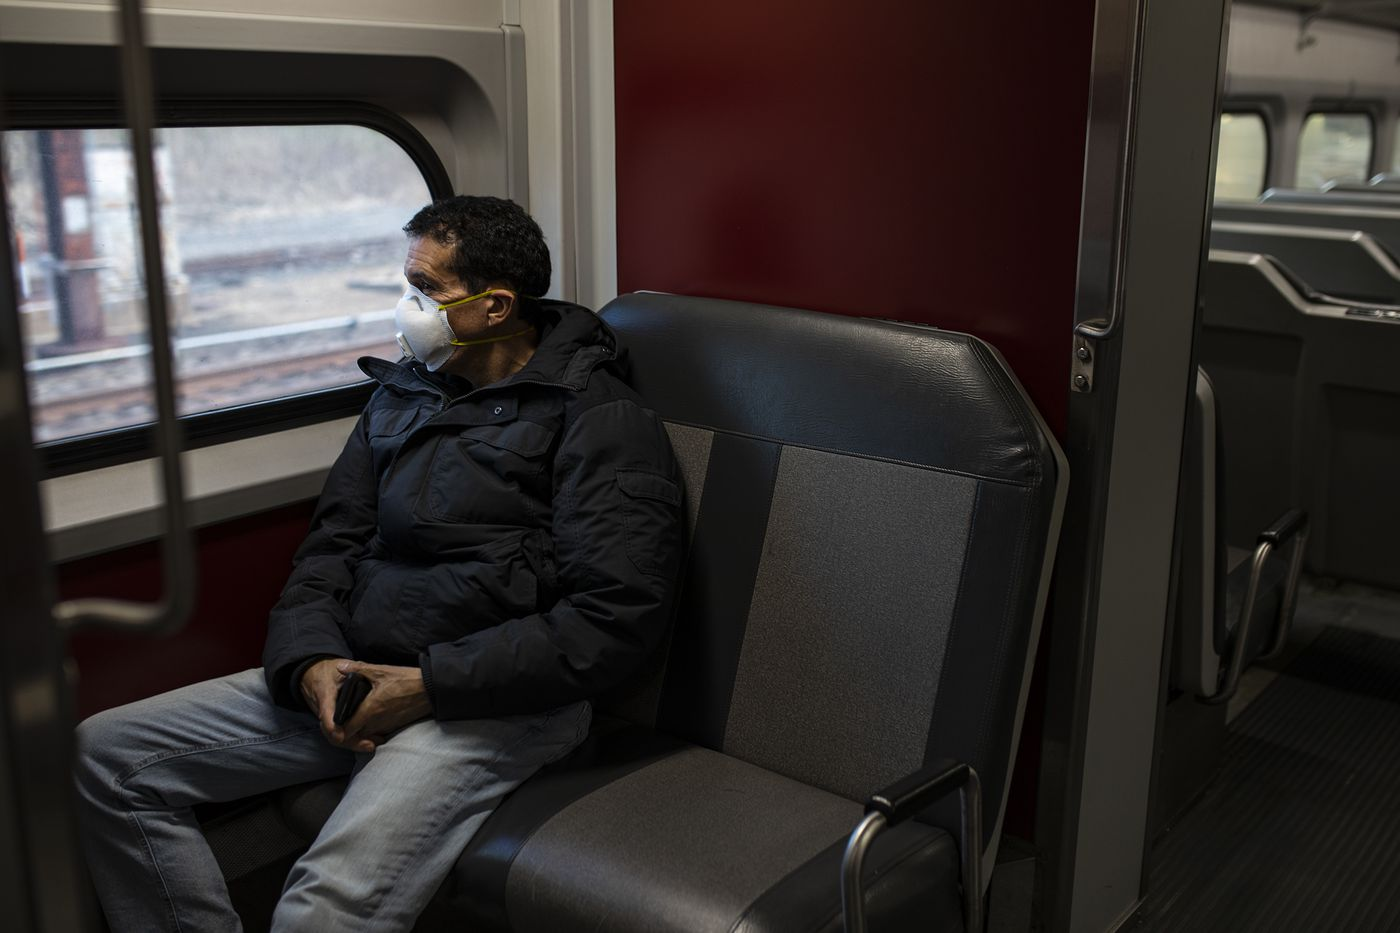 """Rick Kane, of Devon, Pa., rides on the Regional Rail line towards Center City for work on Tuesday, March 24, 2020. Kane has been traveling on train for almost 10 years and stated that he has never seen anything like this before. """"I don't feel anything, just ride it out and hope for the best,"""" Kane said. """"Doing what the officials are asking me to do. I just miss everything and want to go back to normal."""""""